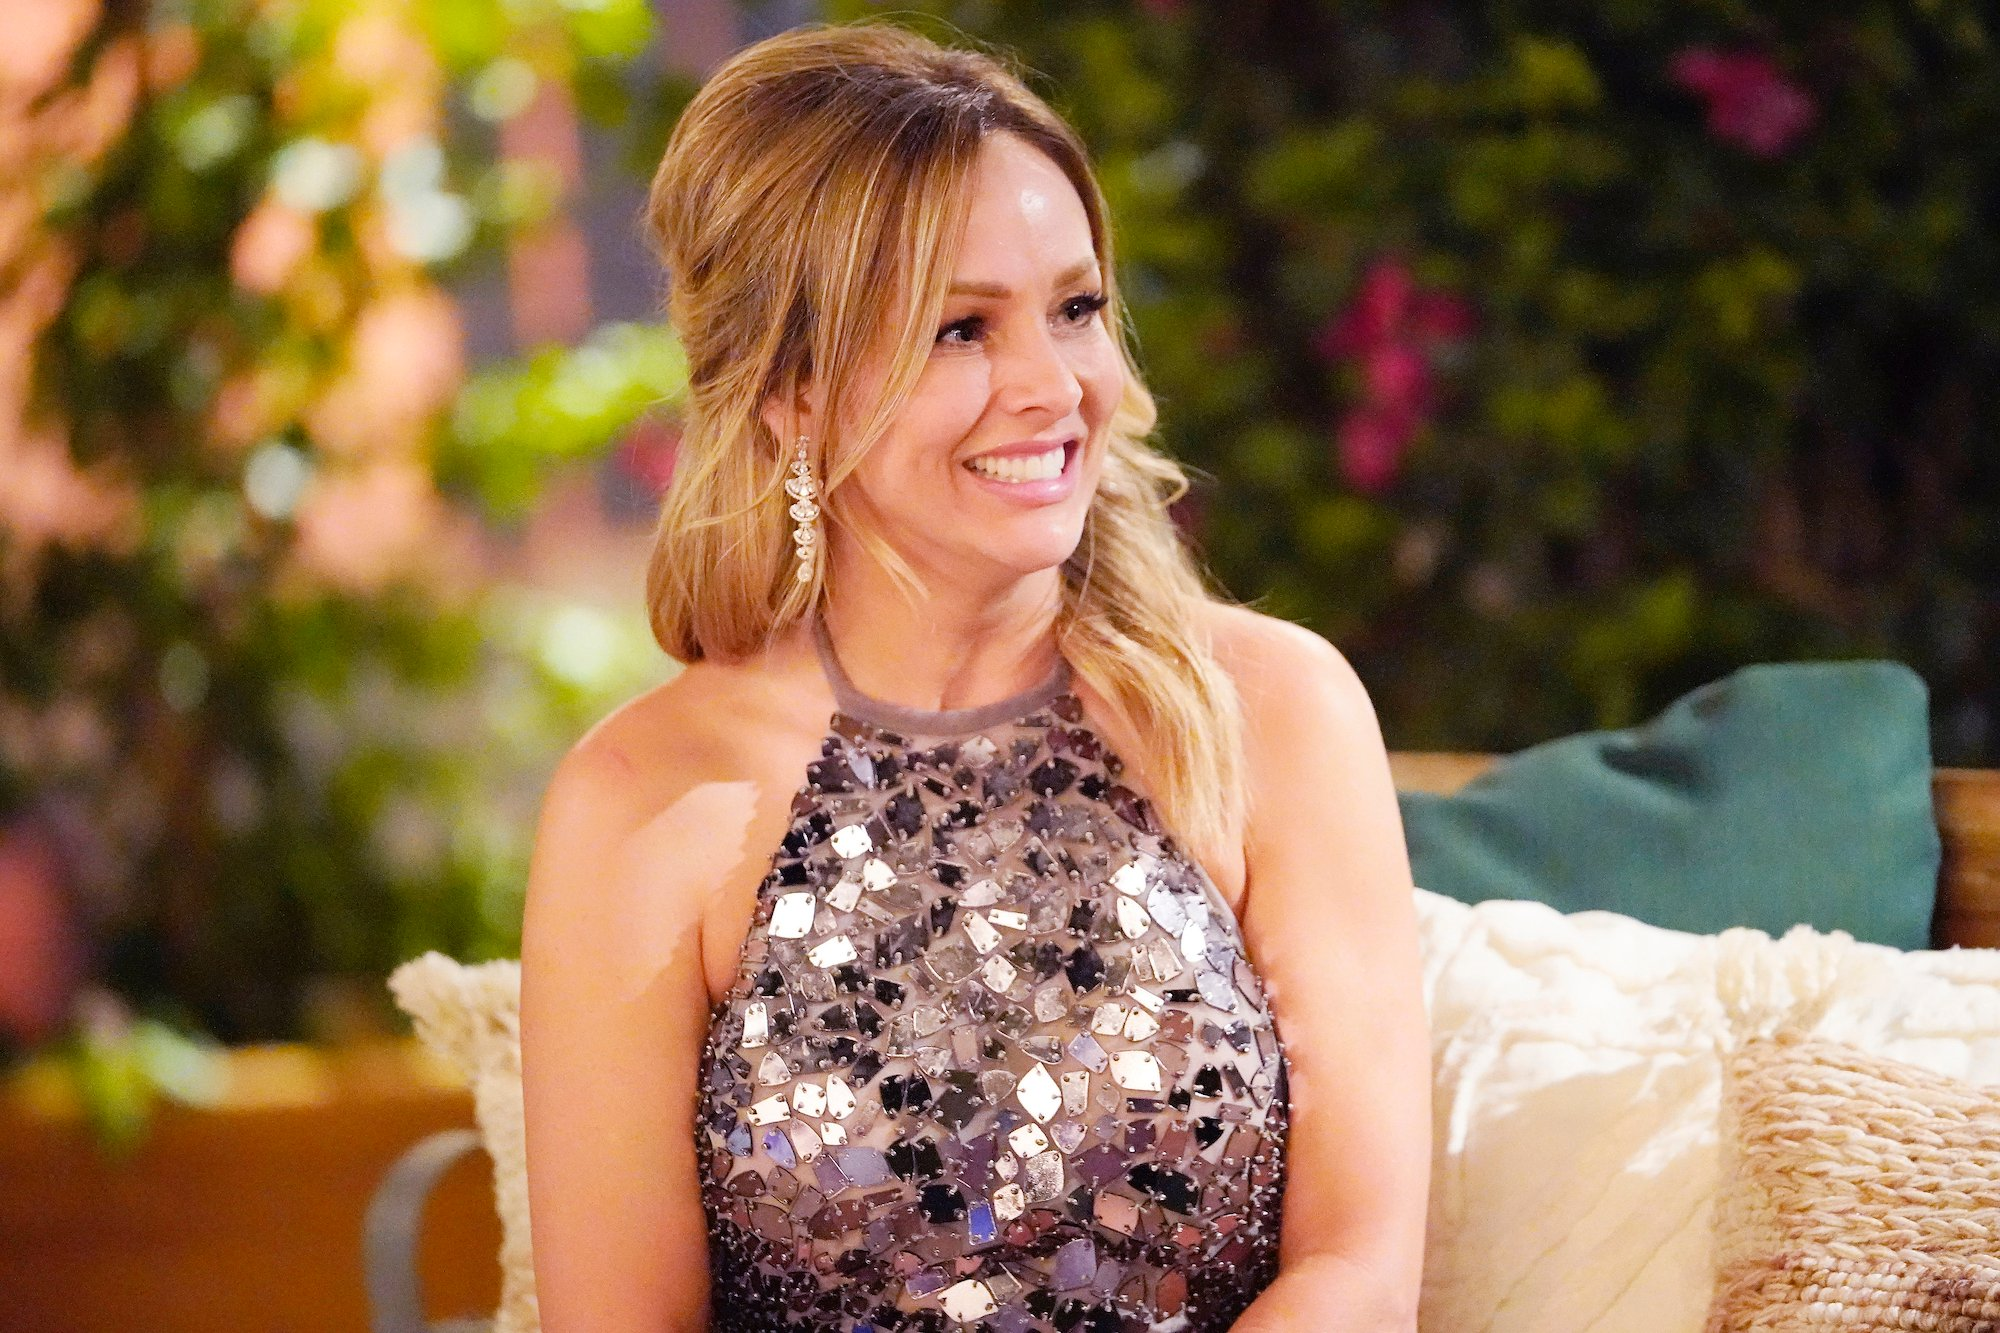 Clare Crawley Accused Of Lying About Missing Prom By Bachelorette Fan – Check Out Her Clap Back!